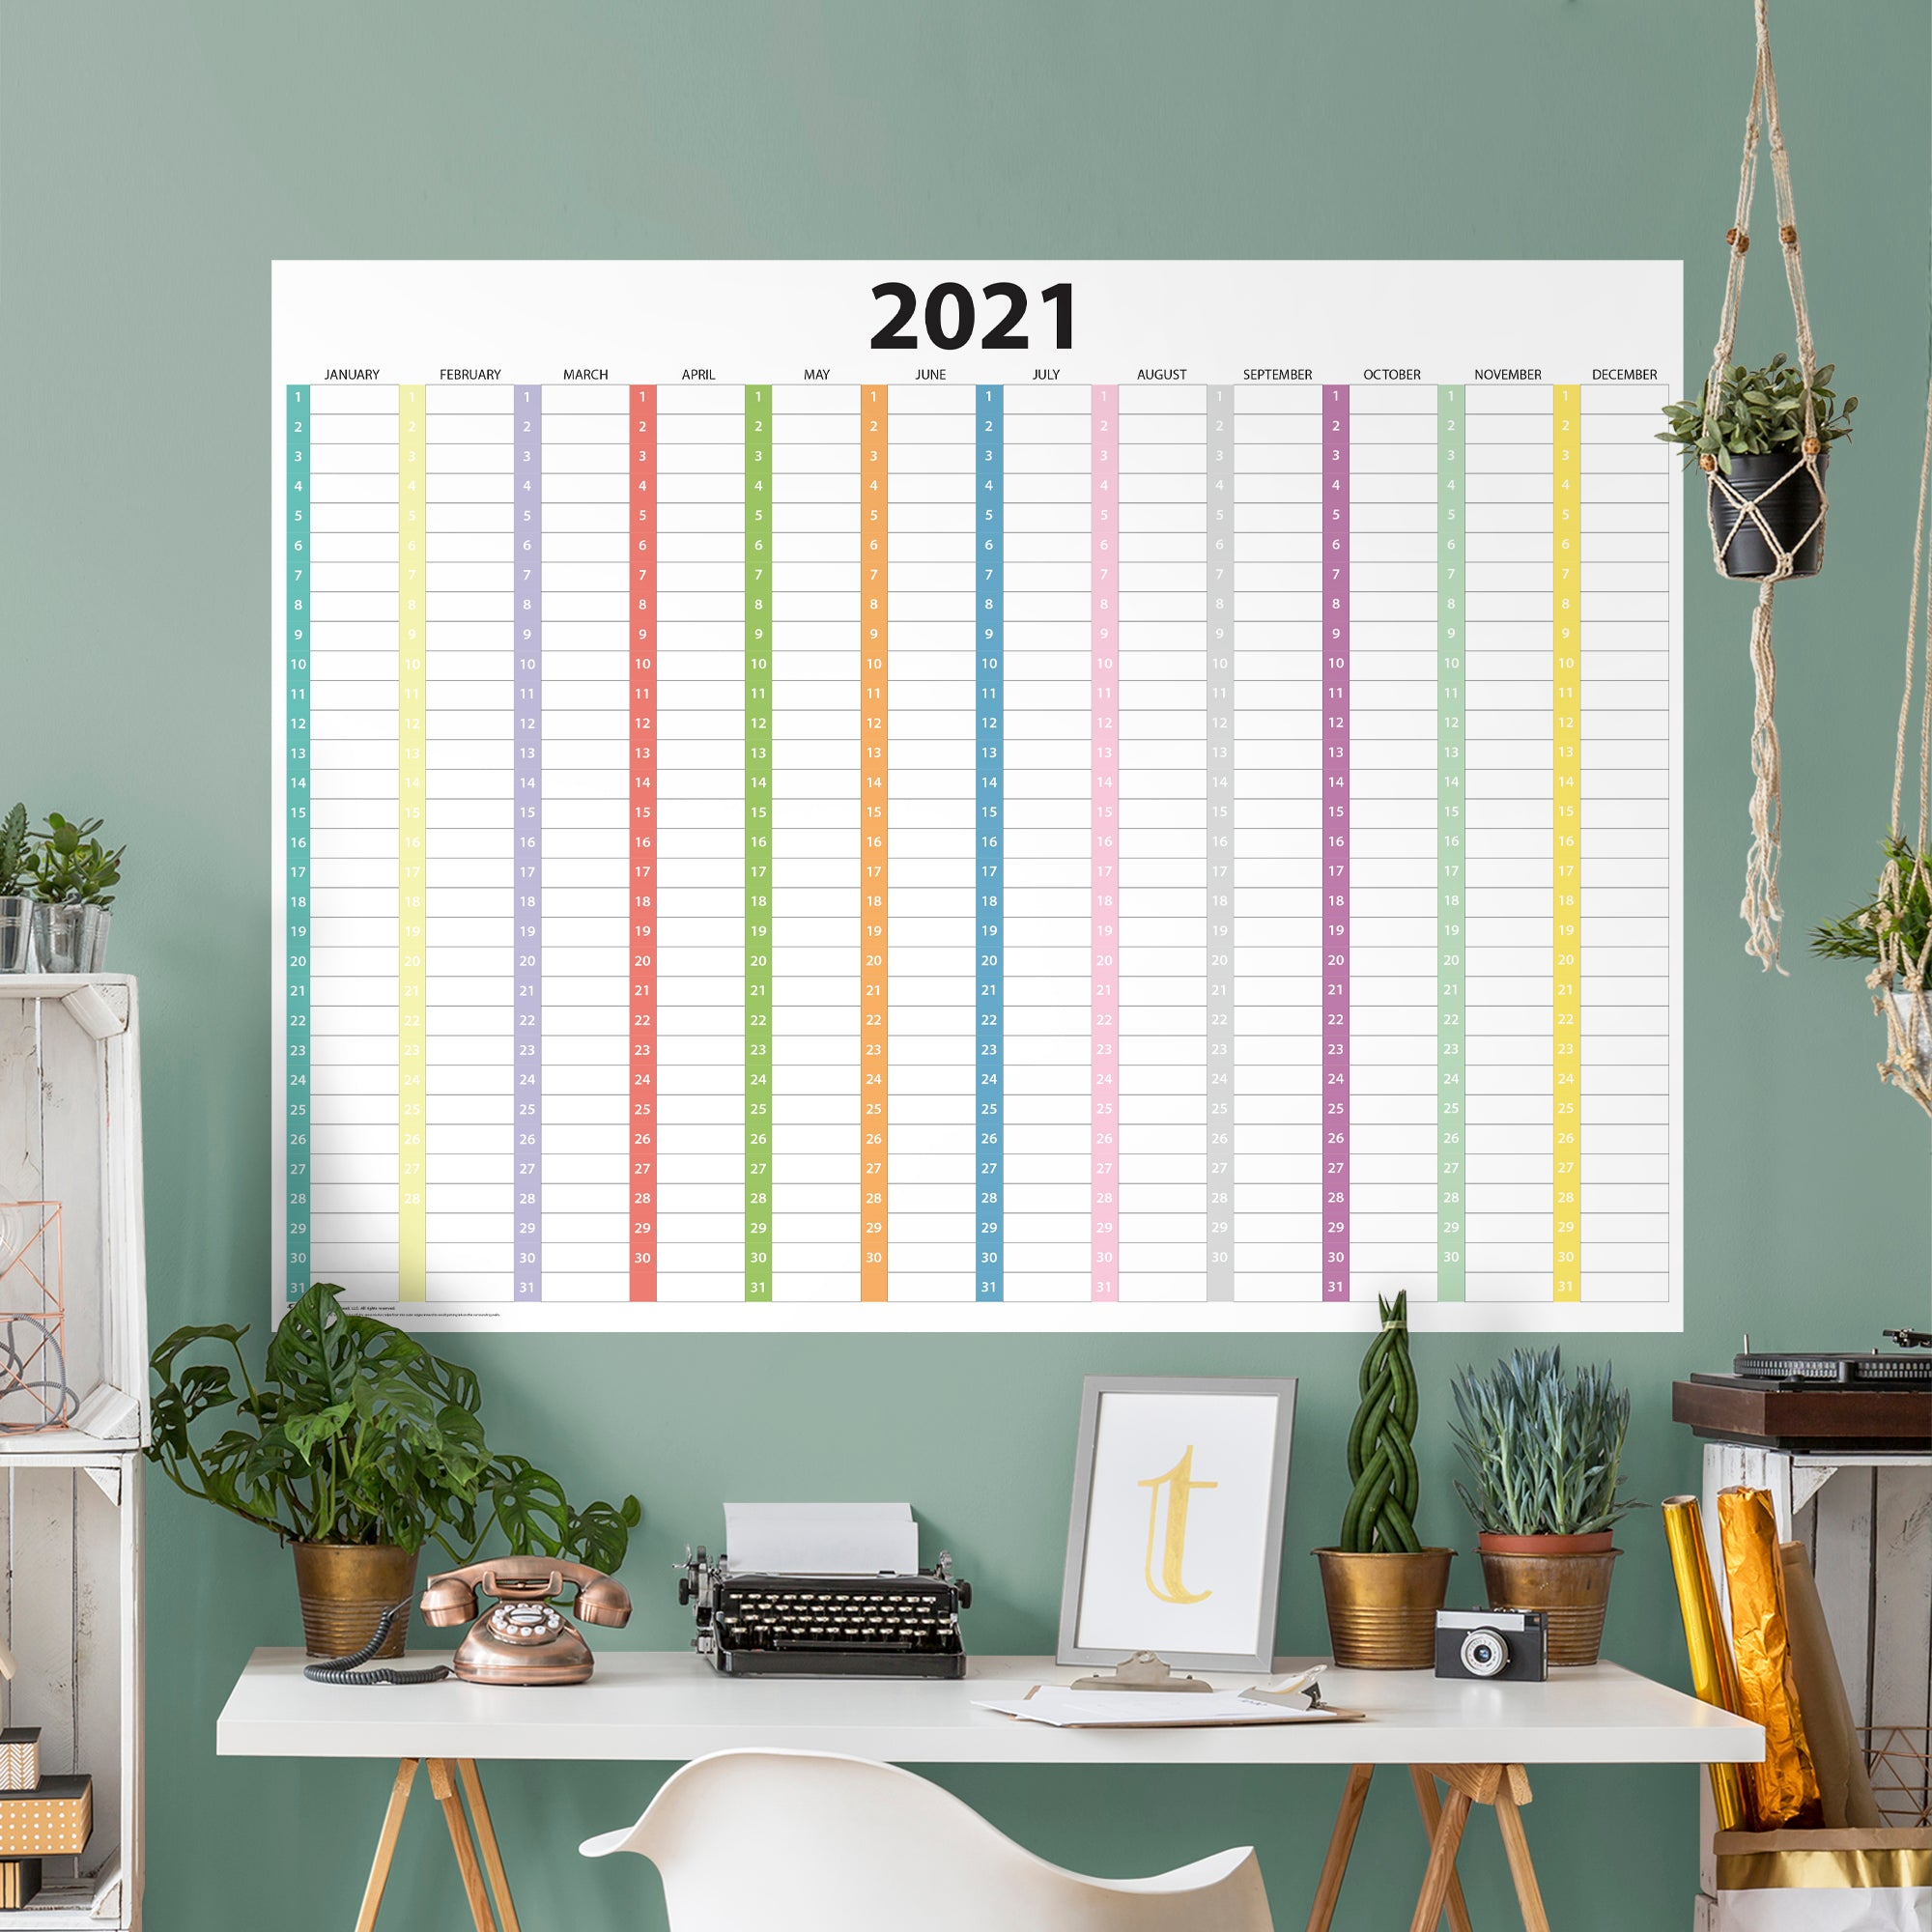 """2021 COLUMN Dry Erase Calendar - Removable Wall Decal Giant Decal ( 54"""" W x 40"""" H) by Fathead   Vinyl"""